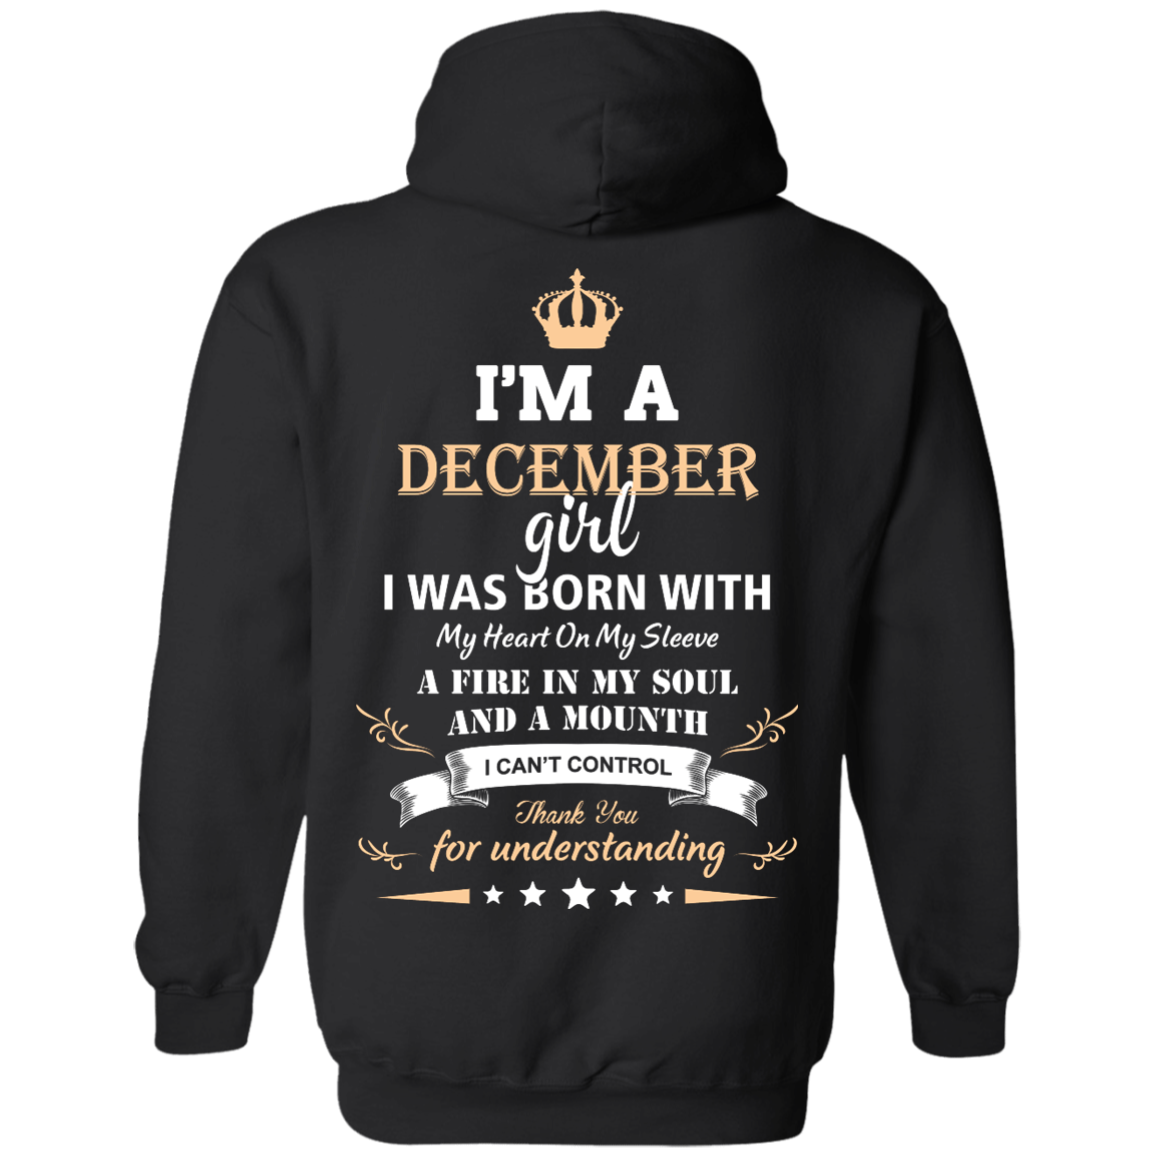 02433851e Im a december girl shirts - I was born with my heart on my sleeve a ...